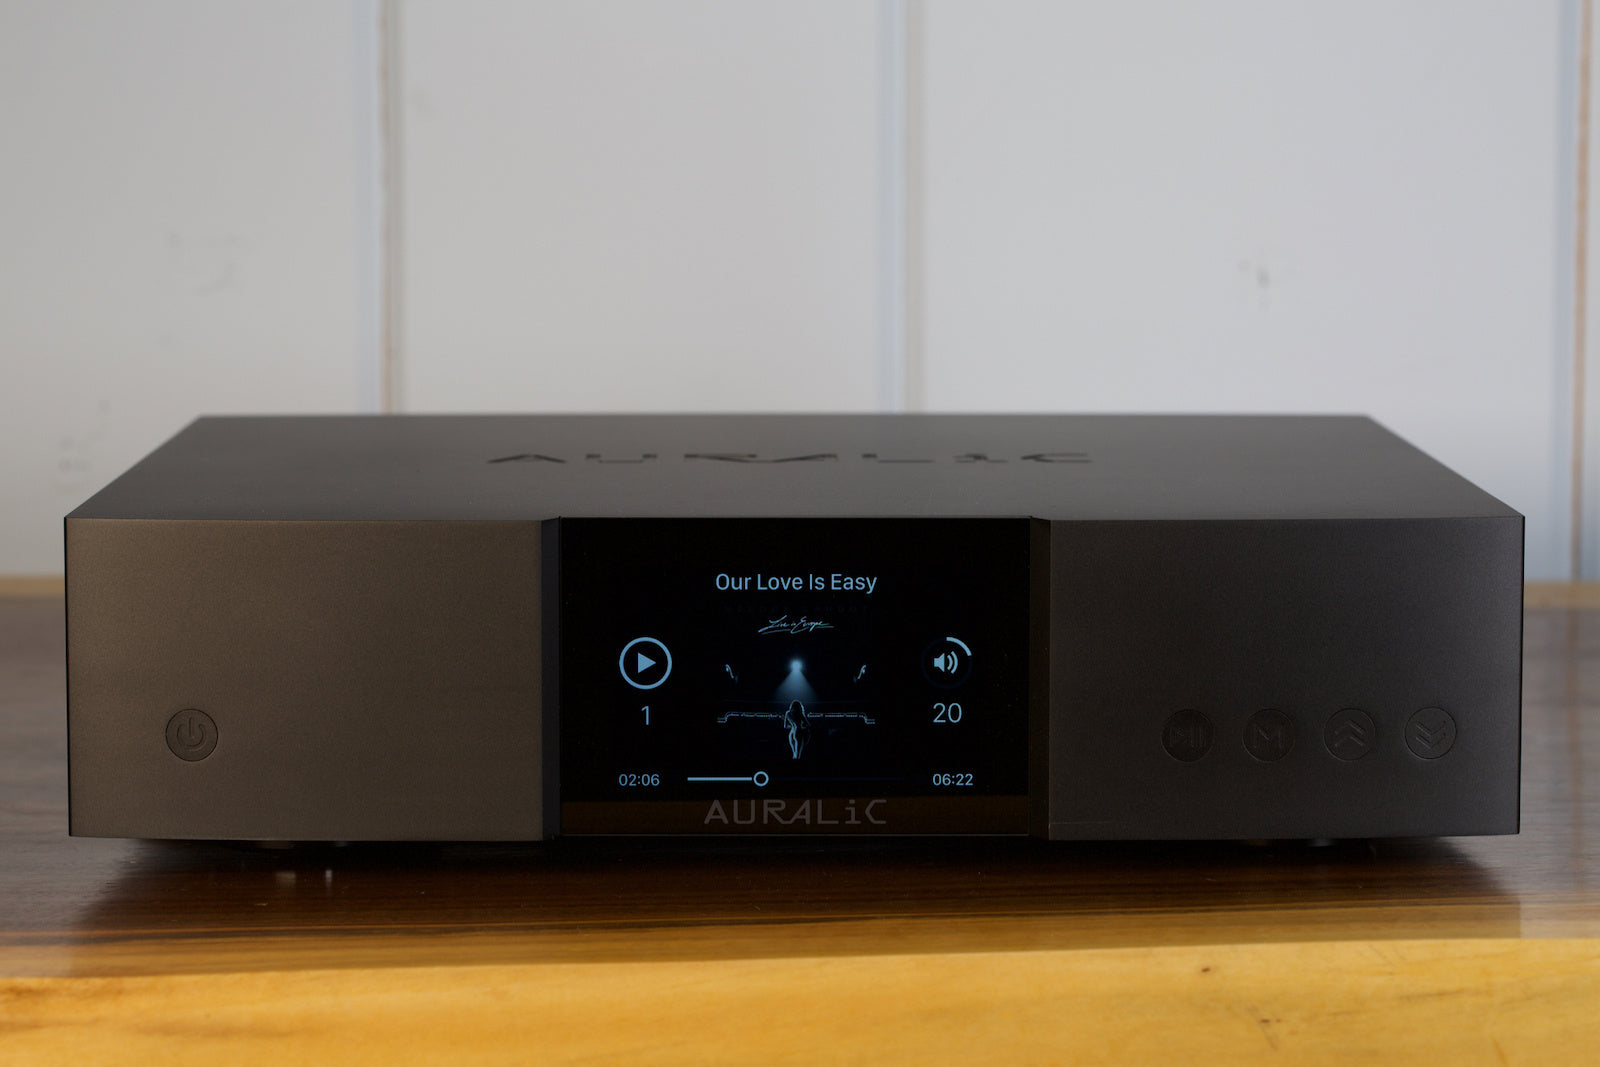 ARIES G2 Review by The Computer Audiophile - AURALIC